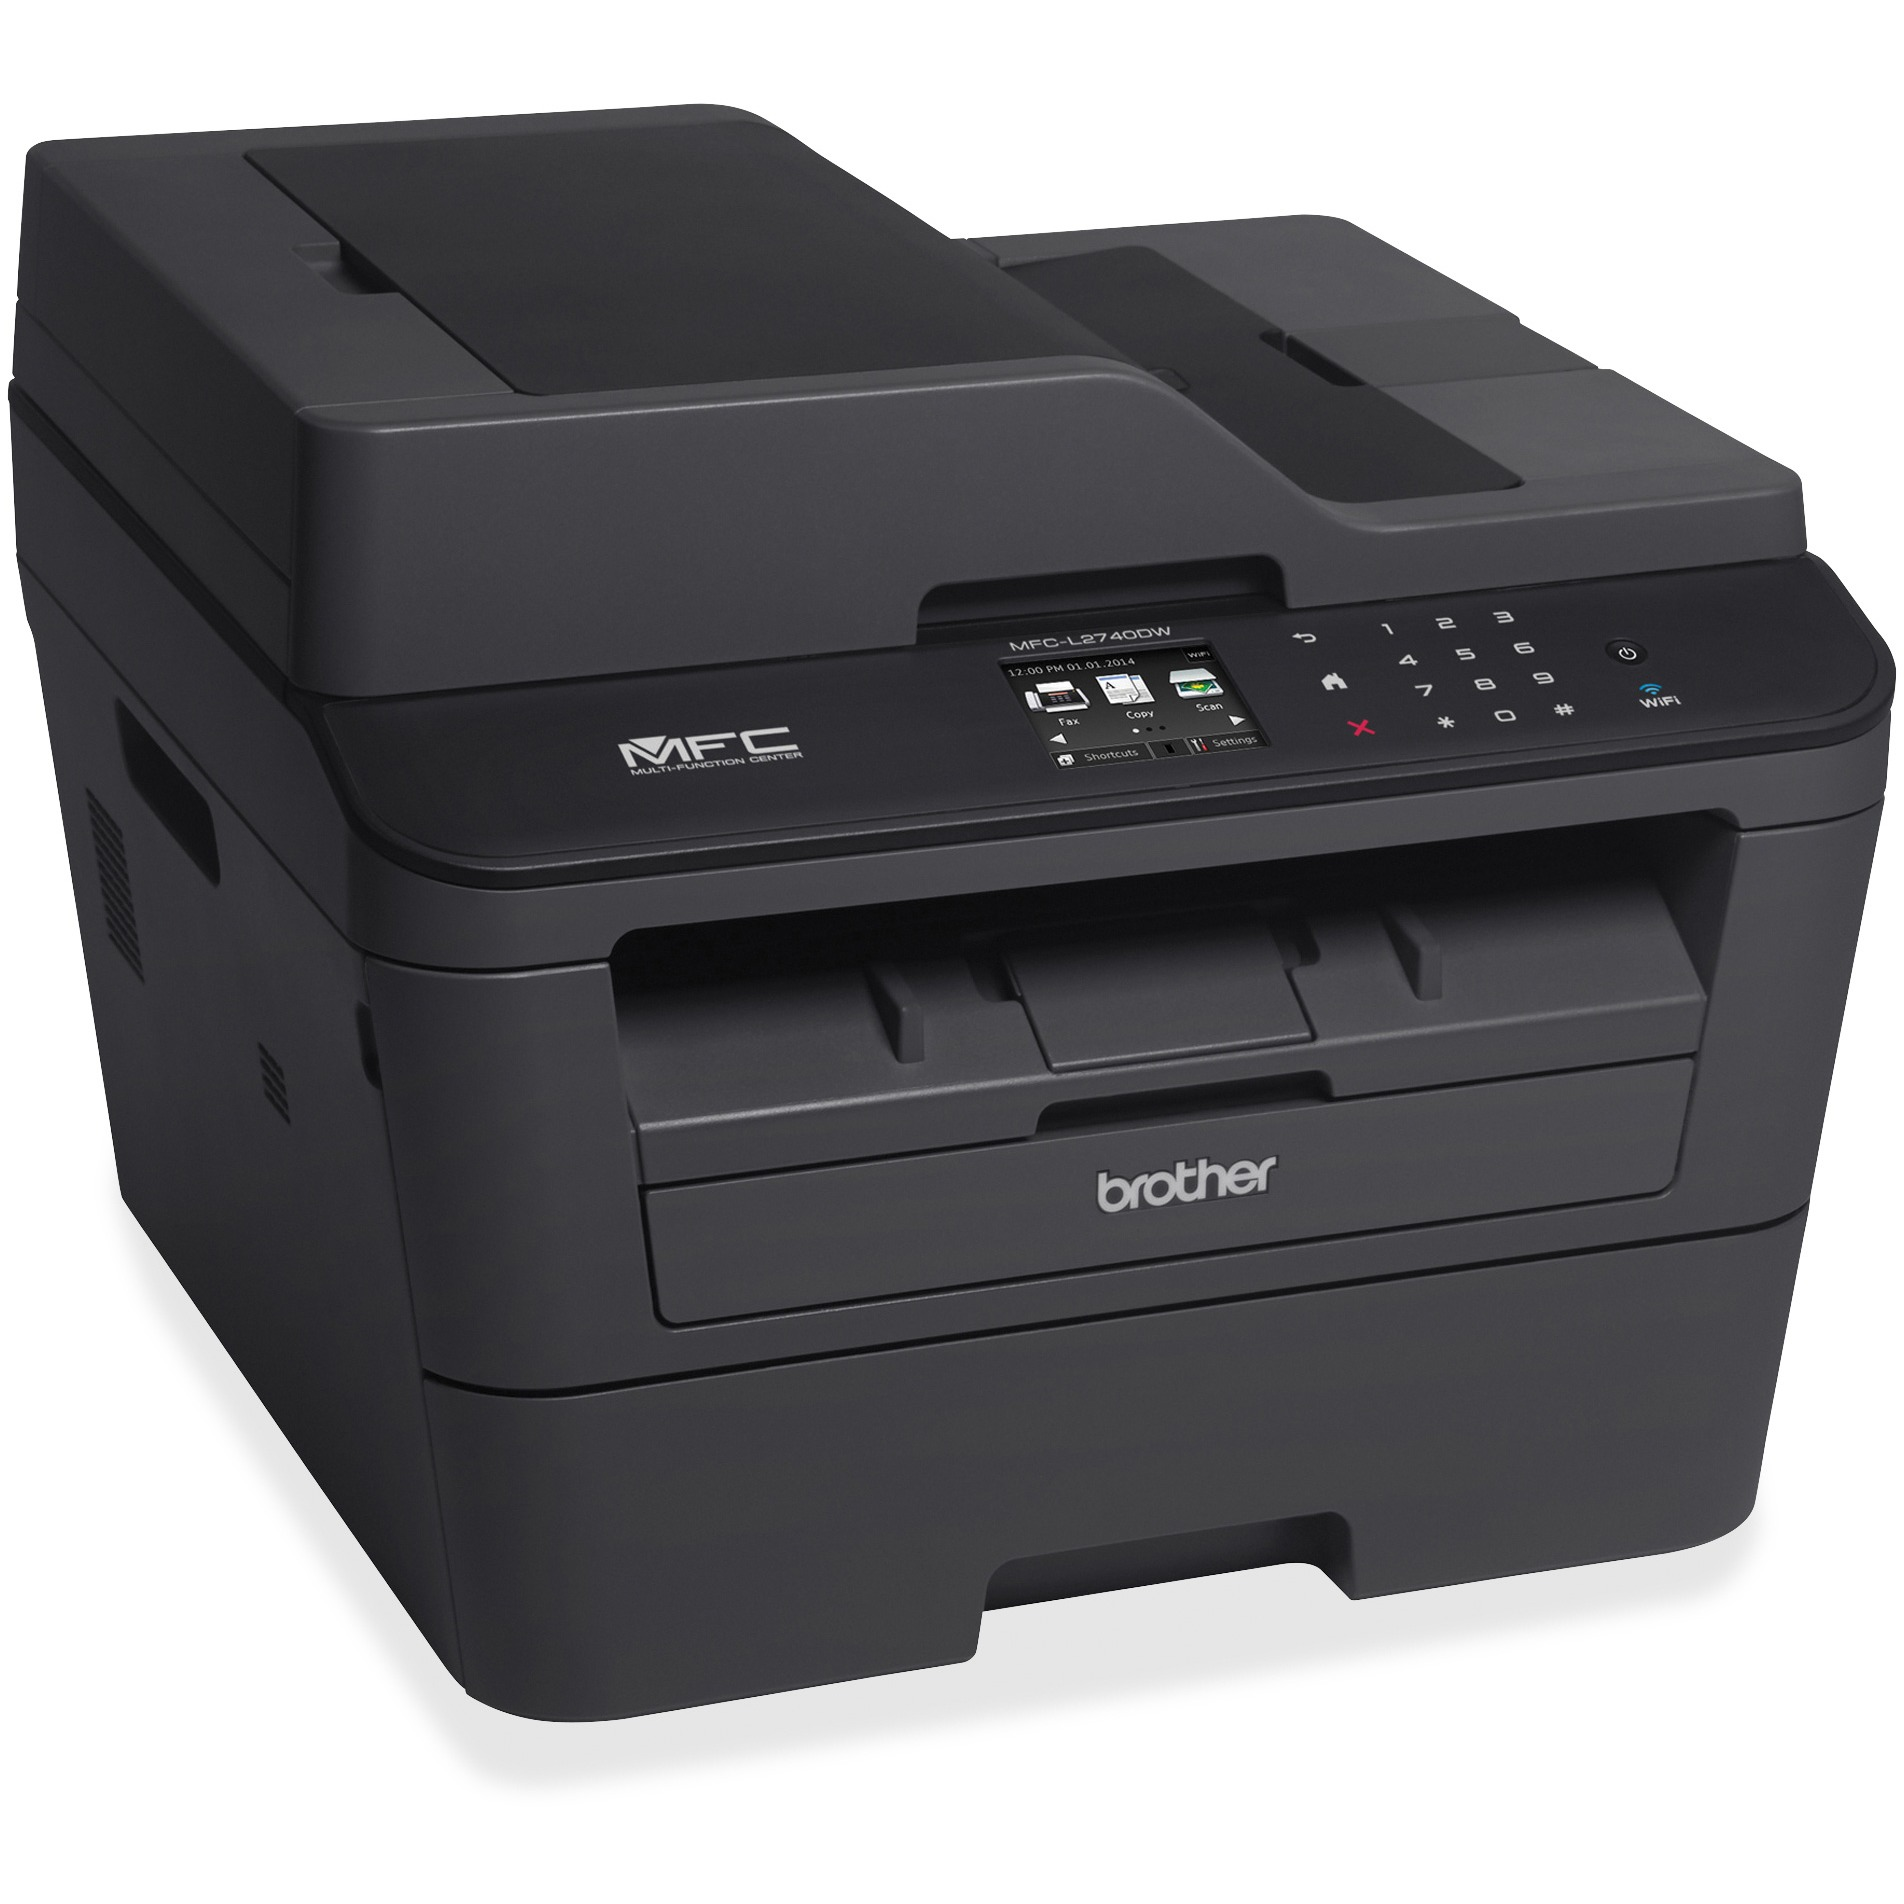 Brother MFCL2740DW Wireless Monochrome Laser AllinOne Printer